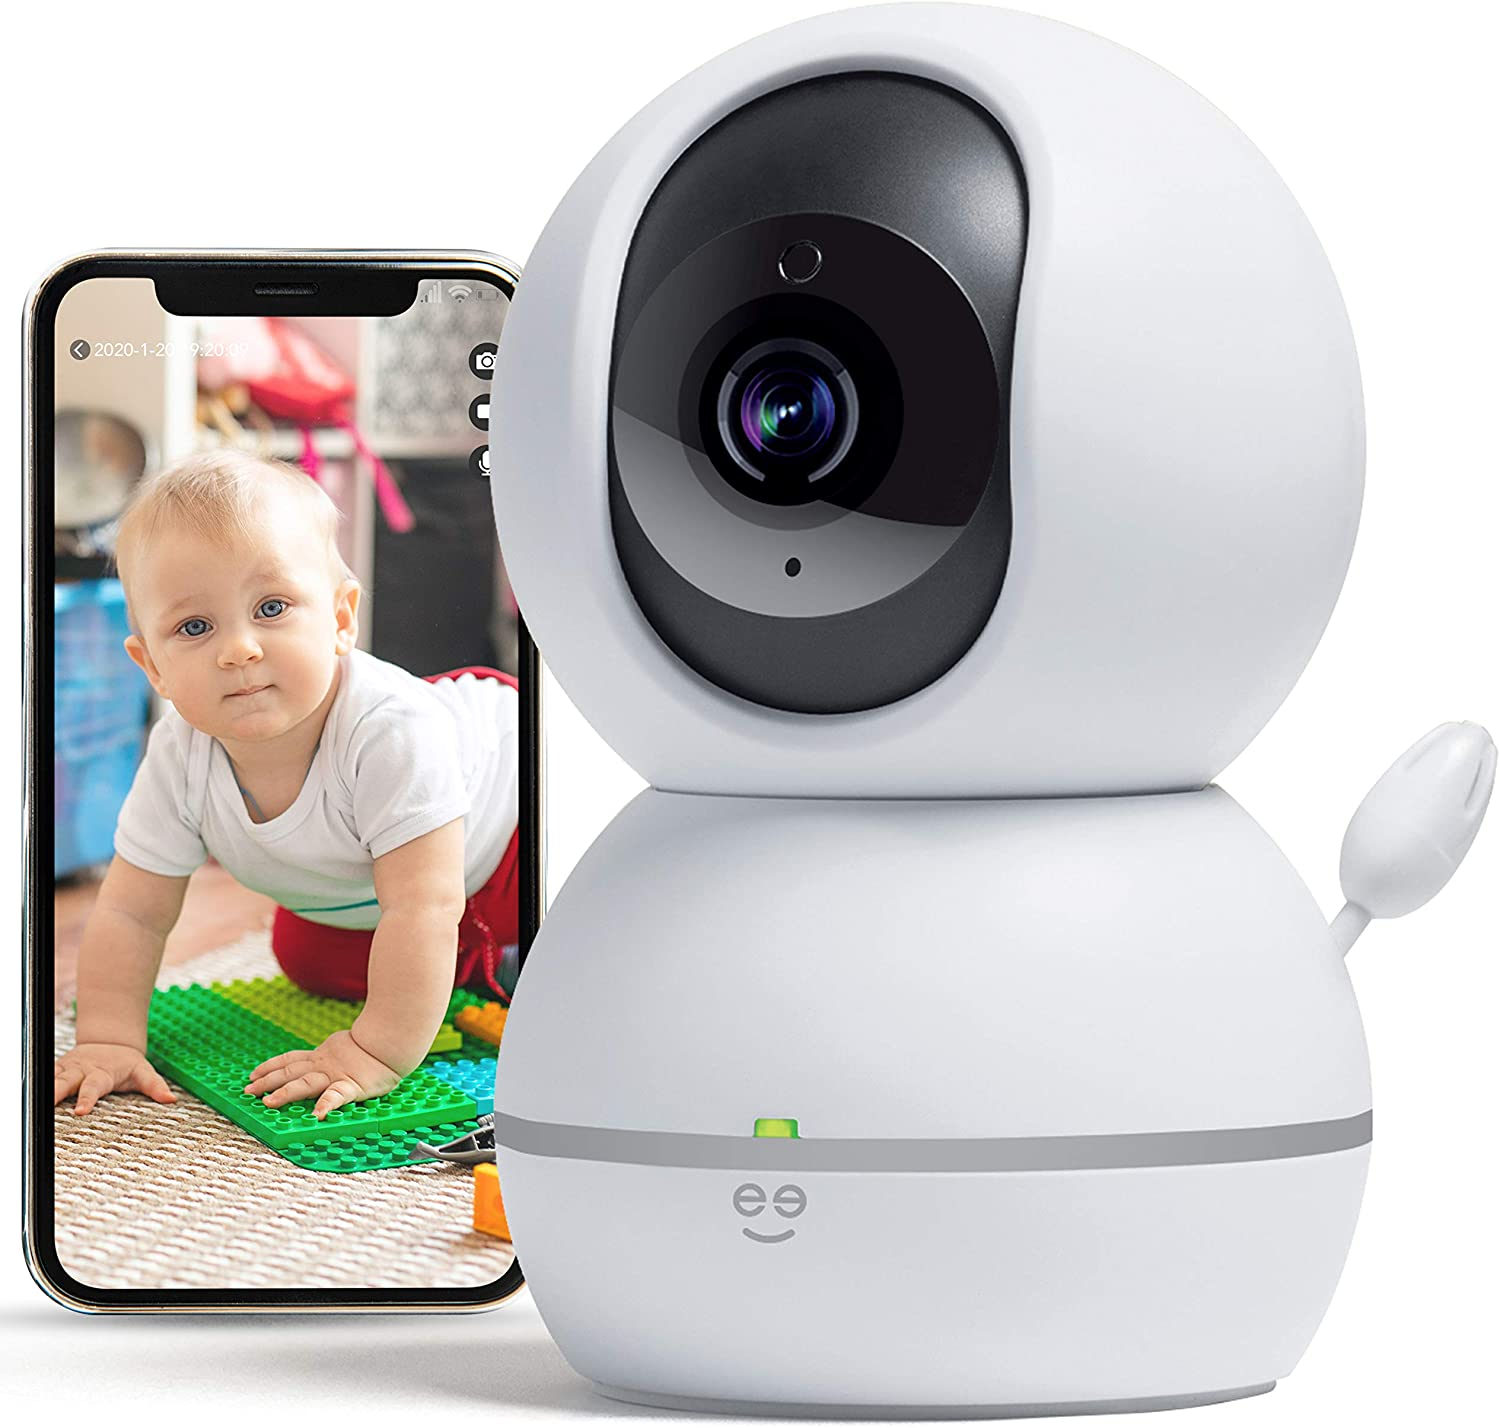 Geeni Smart Home Pet and Baby Monitor with Camera, 1080p Wireless WiFi Camera with Motion and Sound Alert (White)